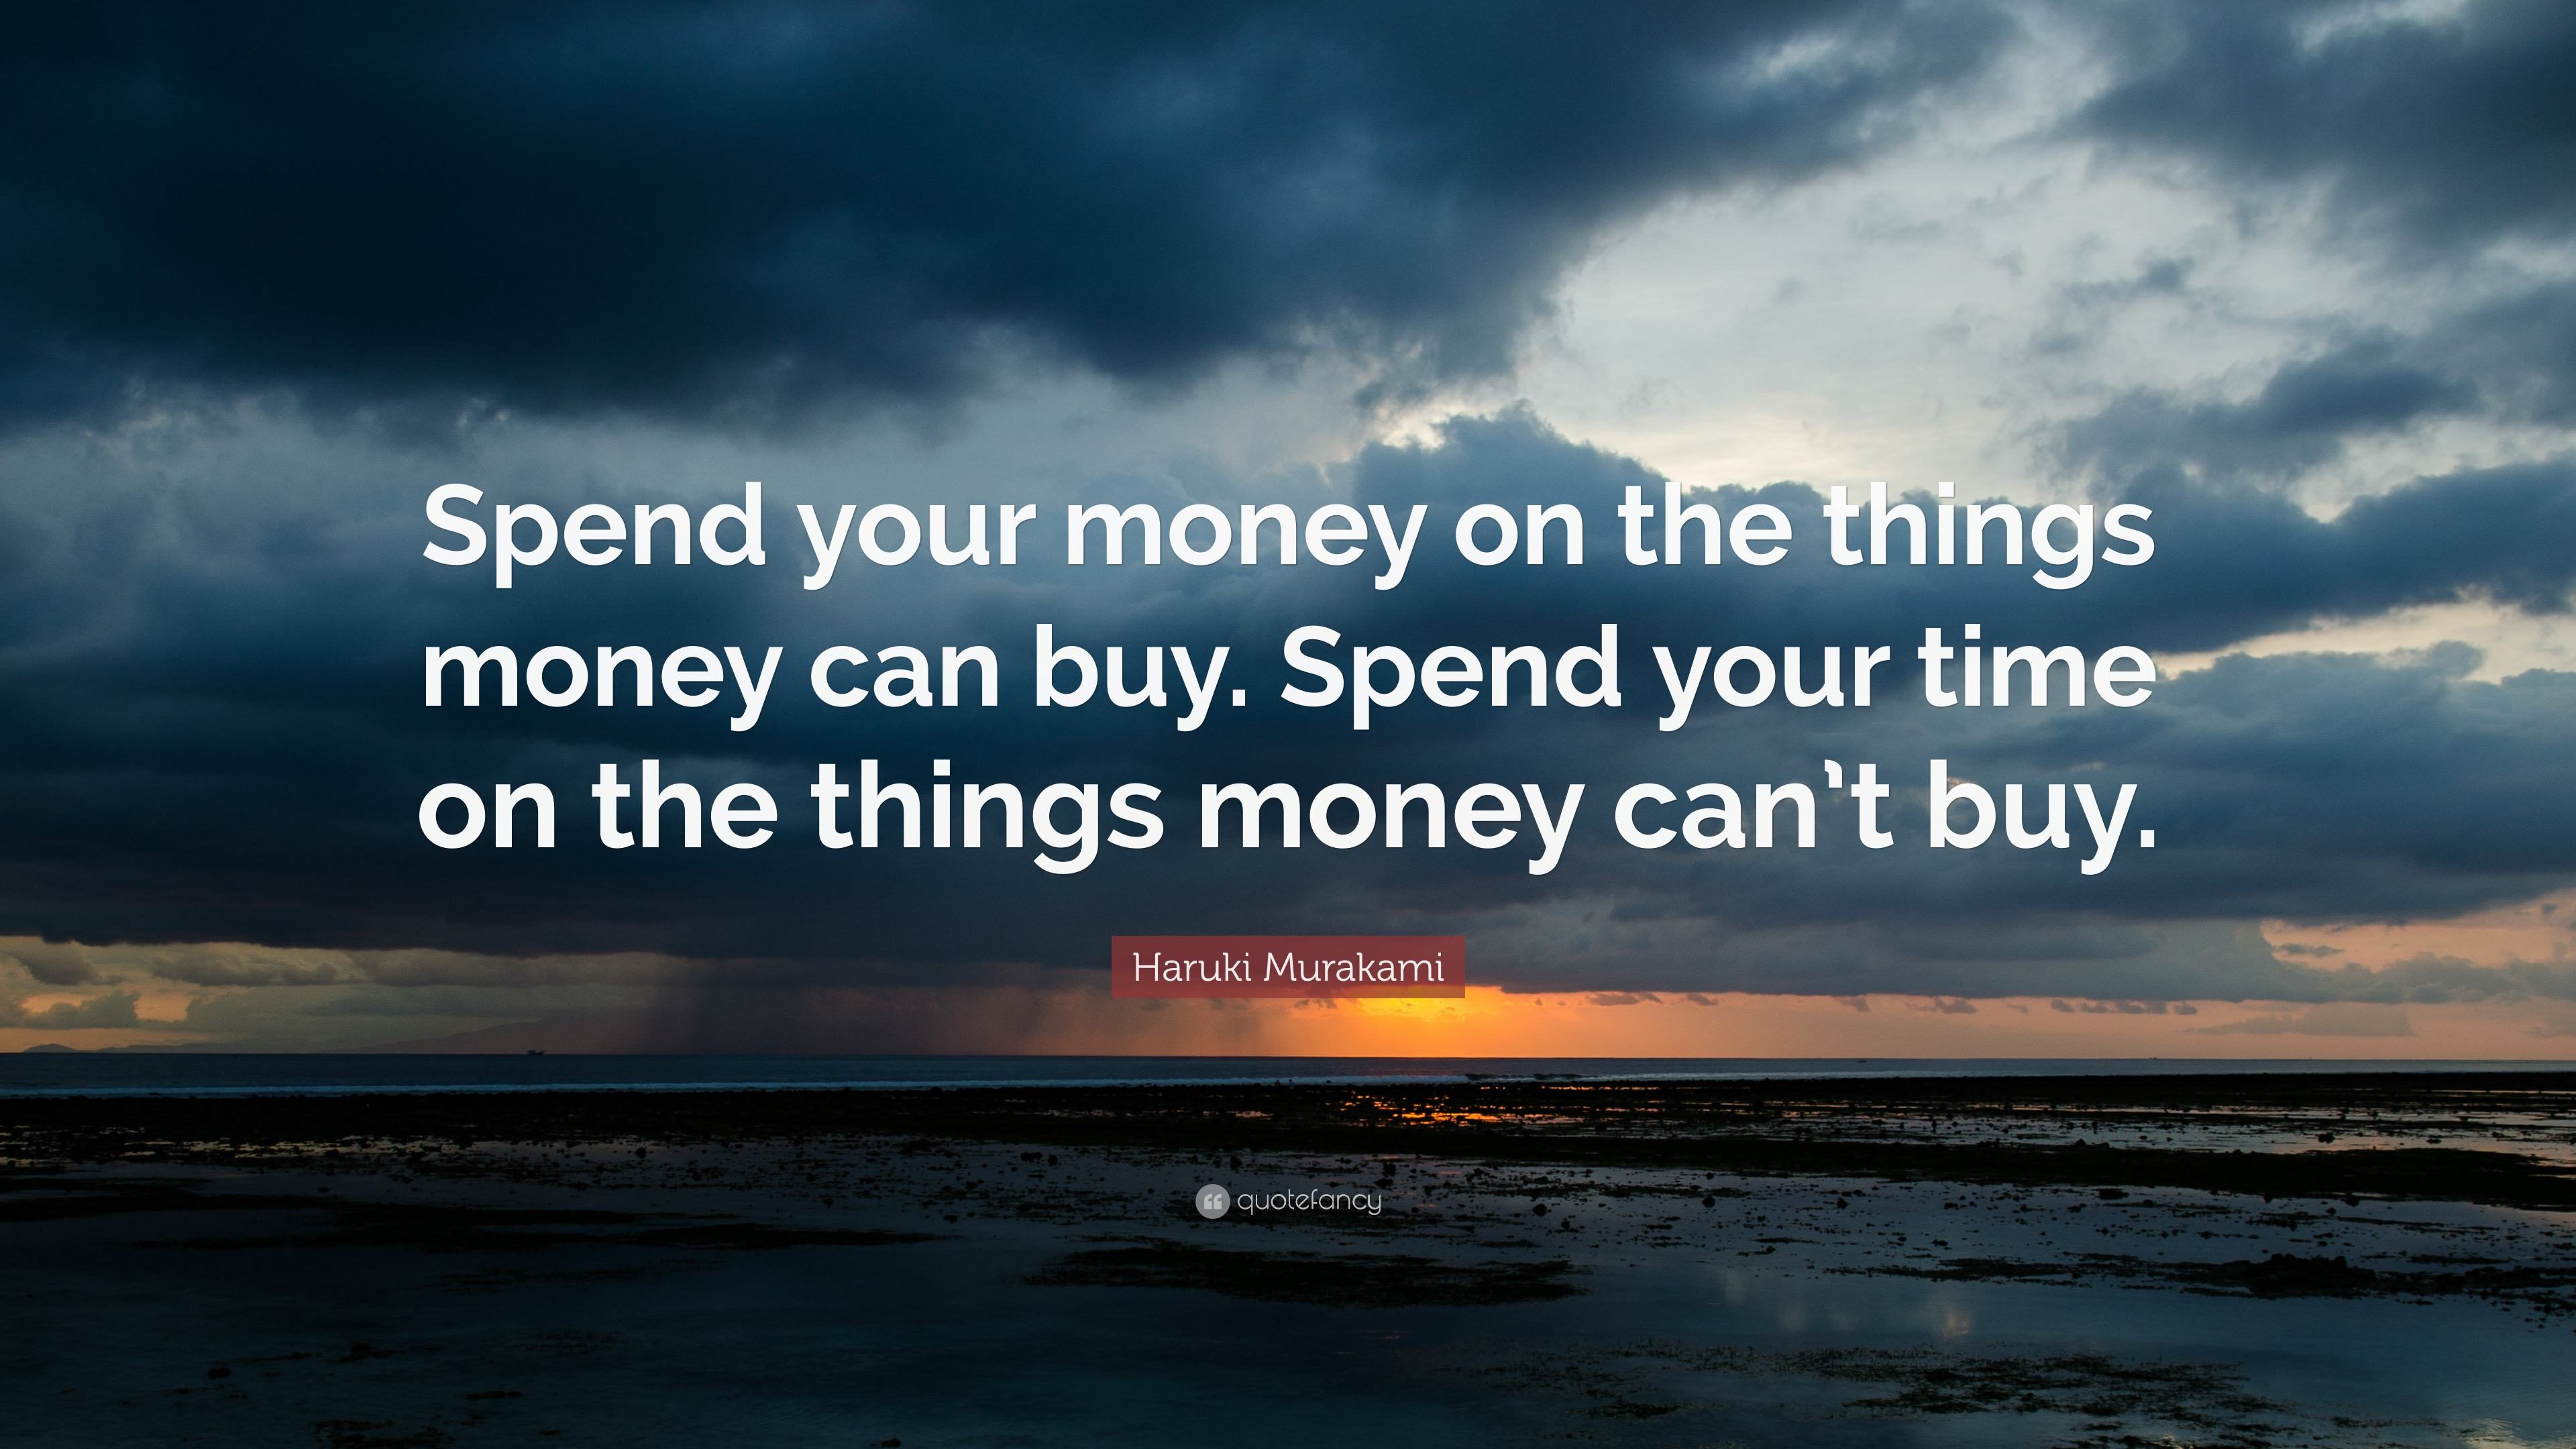 Haruki Murakami Quote Spend Your Money On The Things Money Can Buy